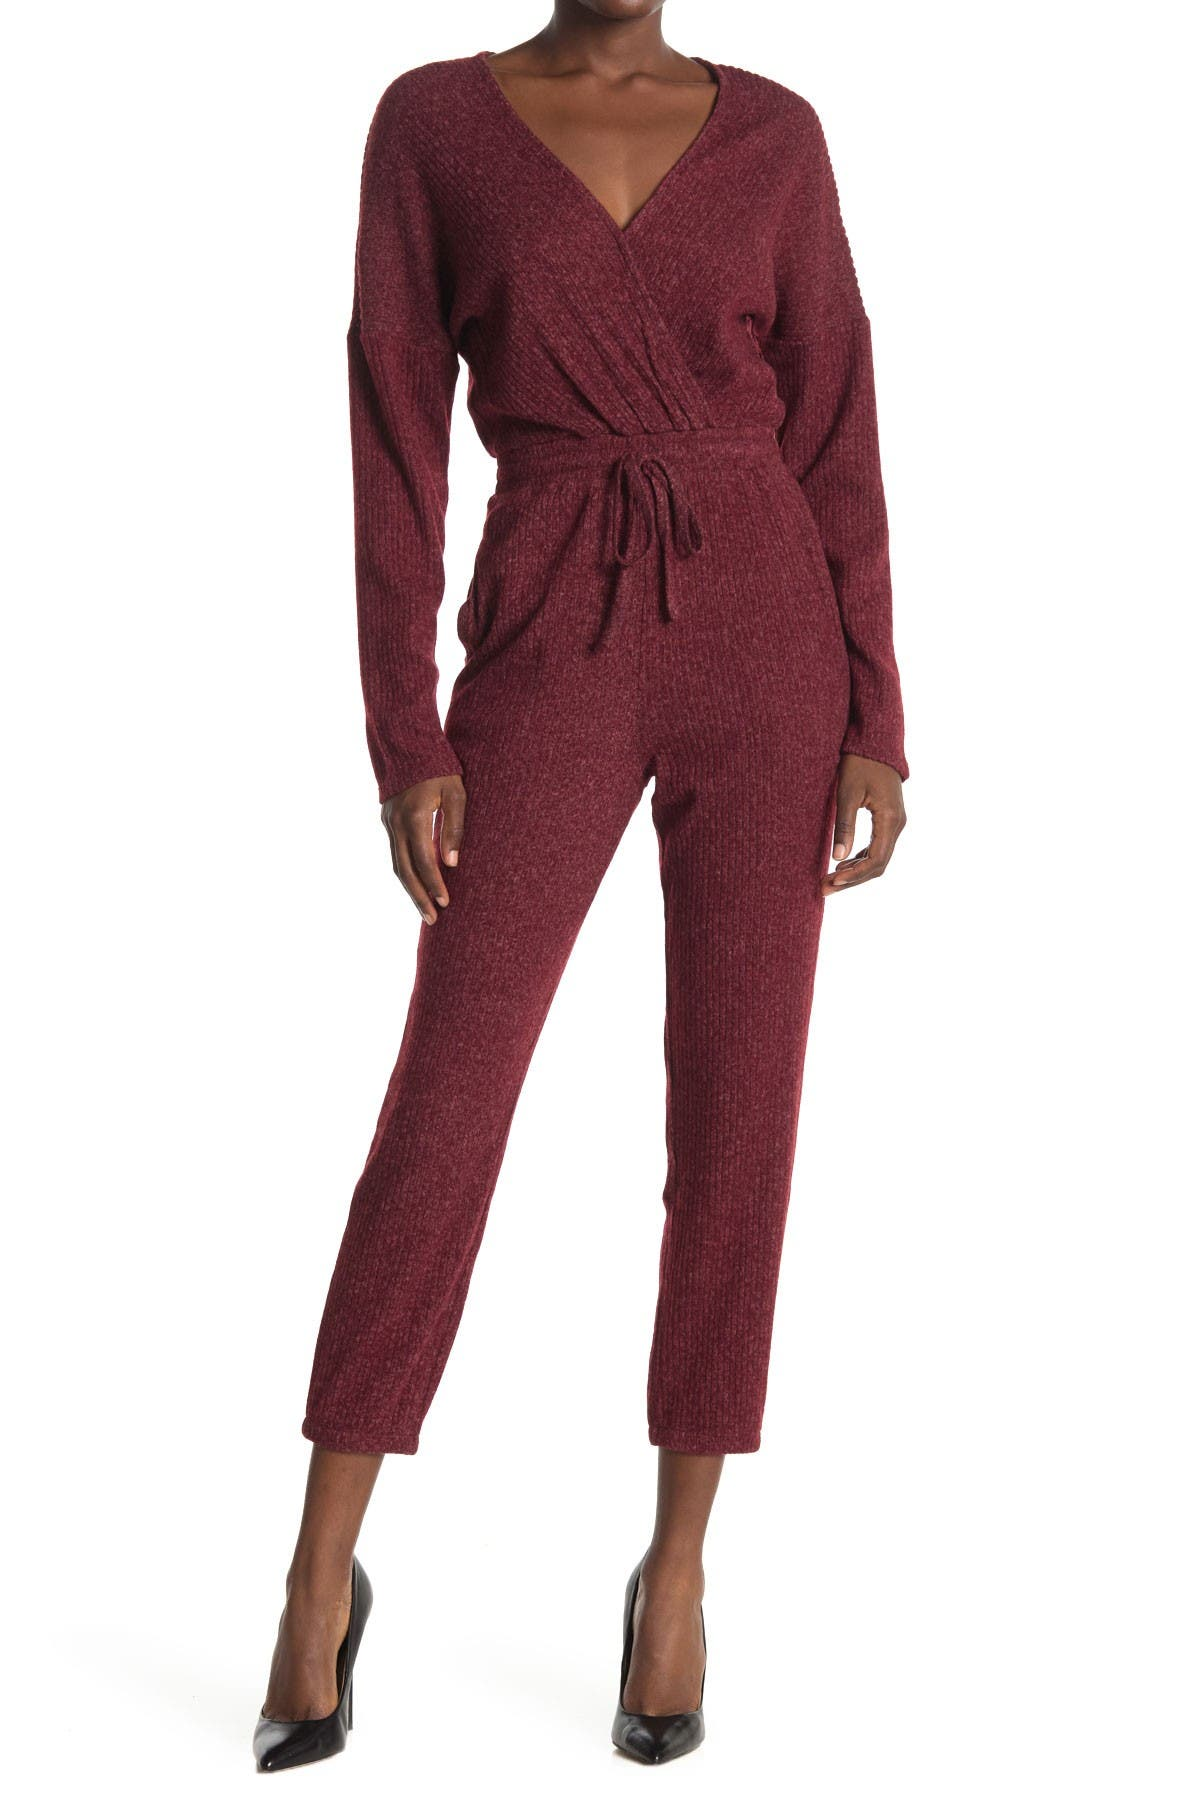 Image of Collective Concepts Knit Jumpsuit